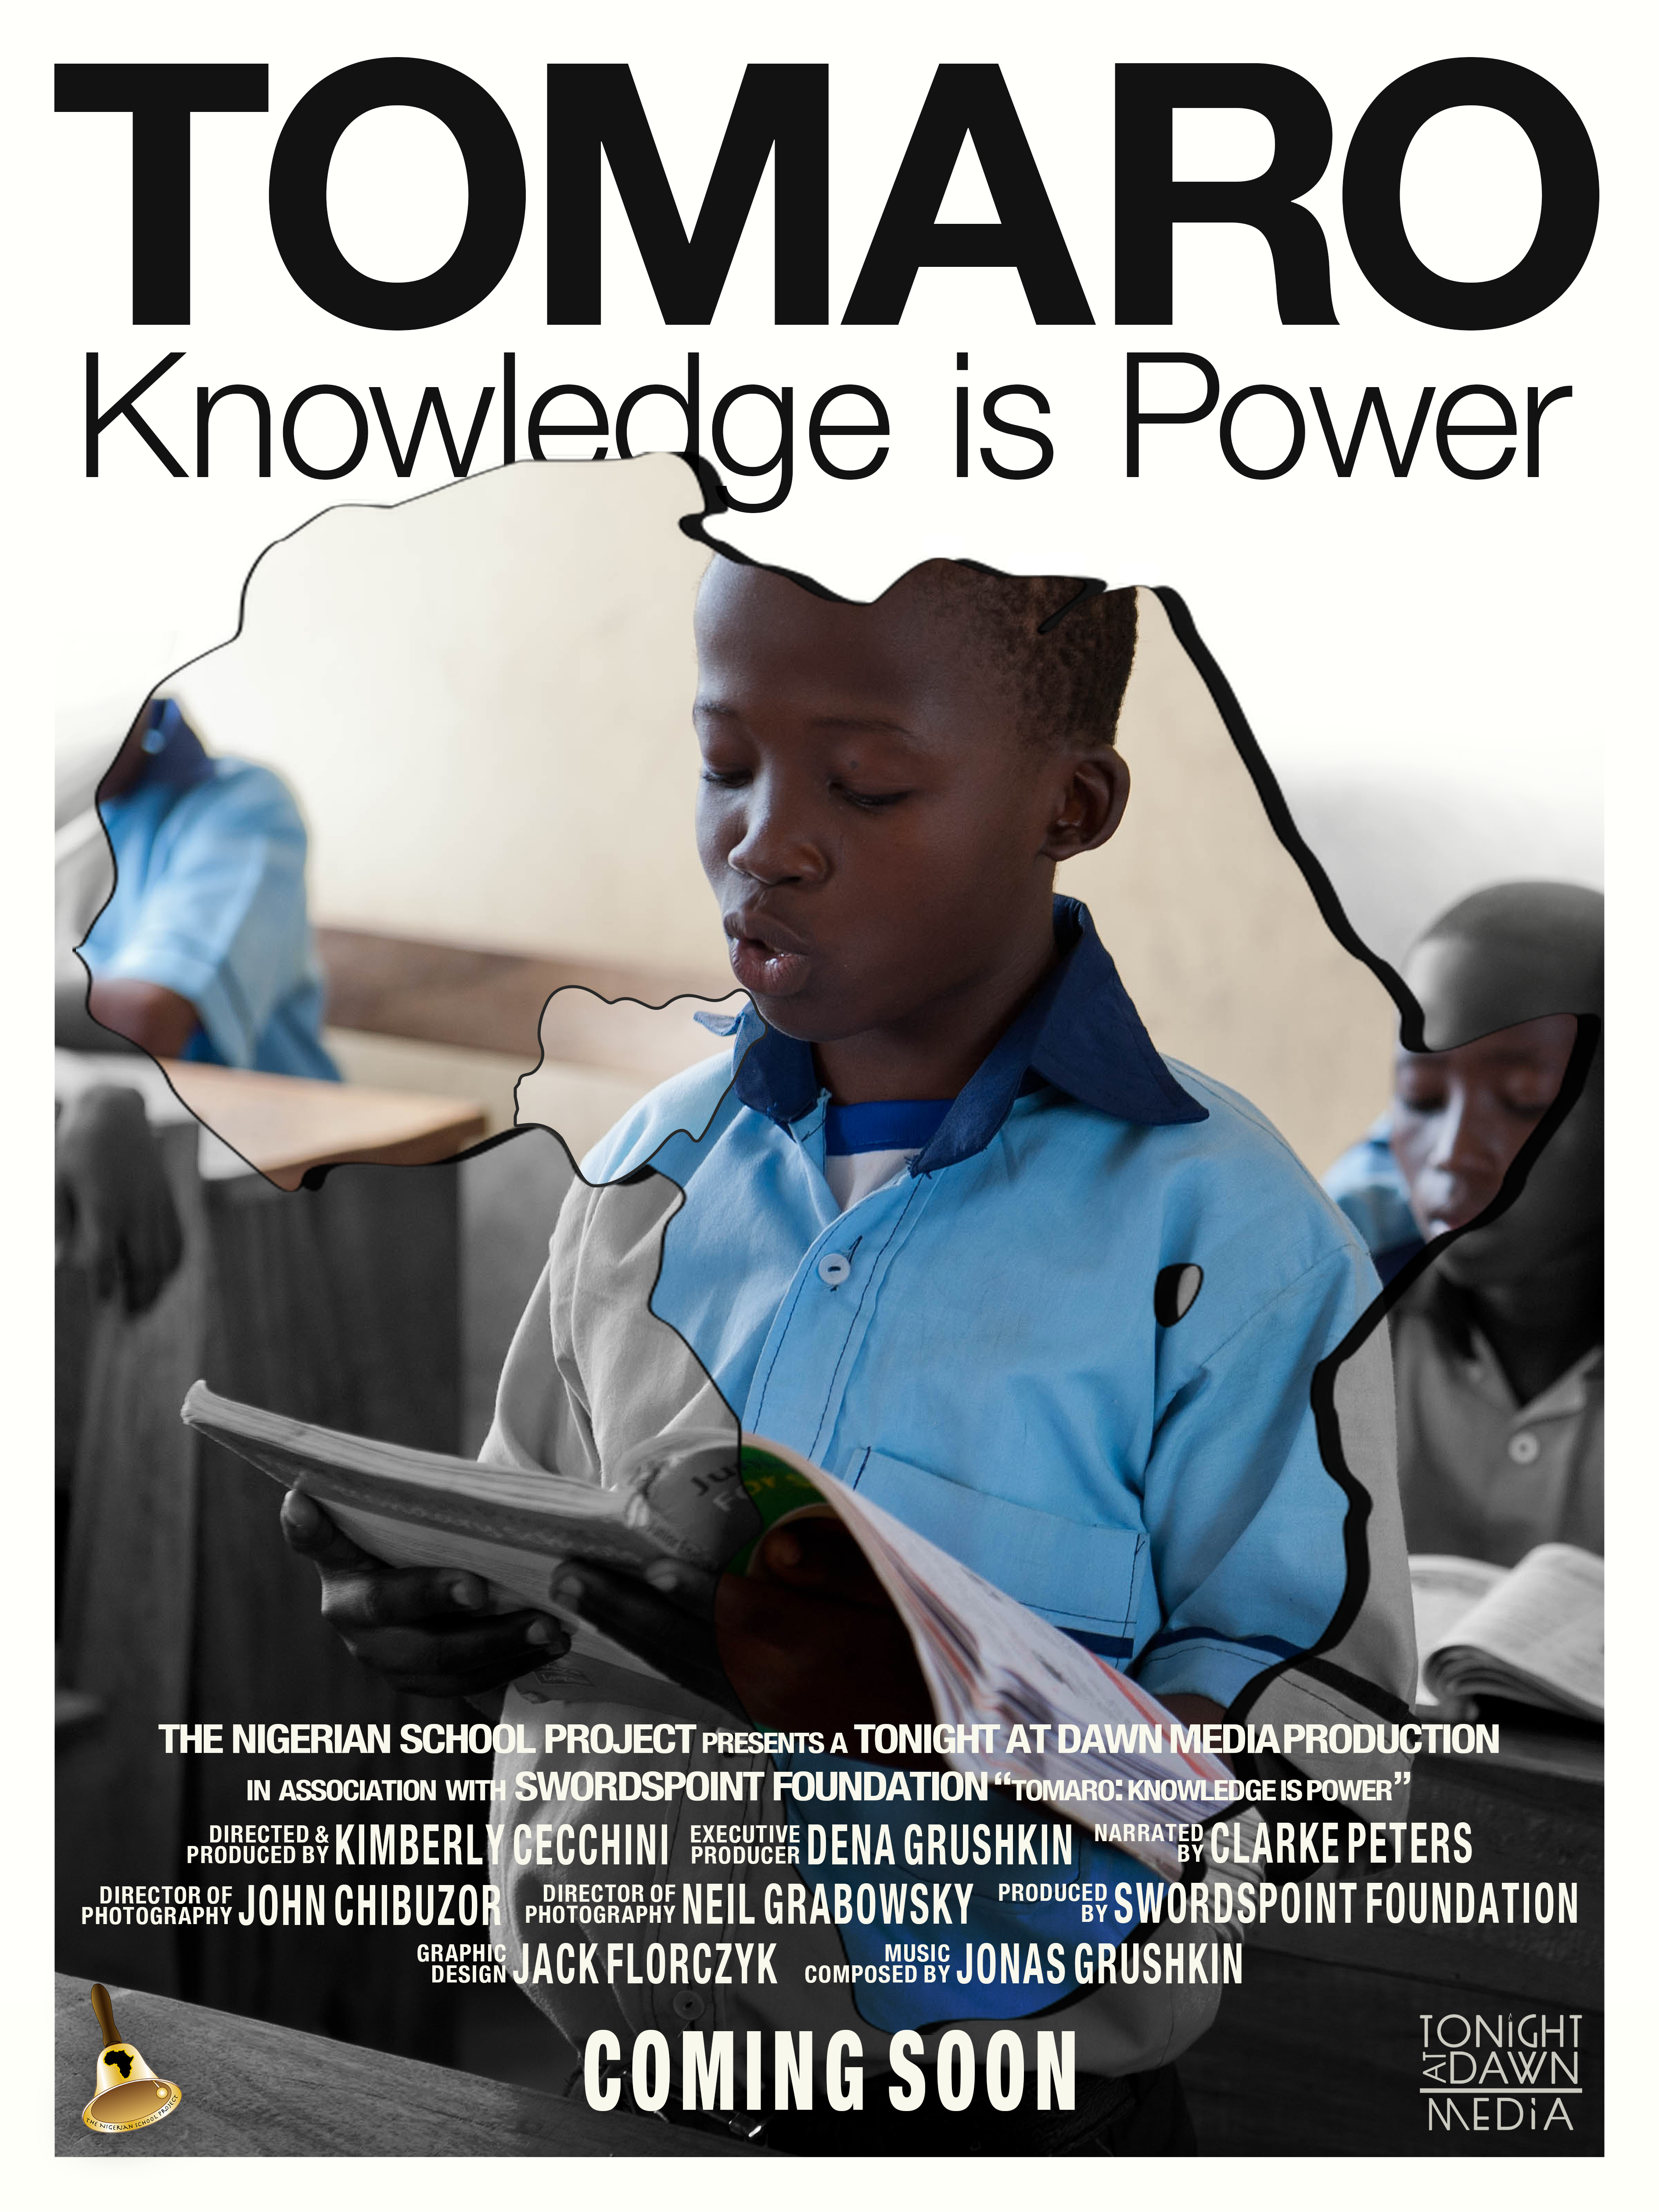 tomaro - knowledge is power poster